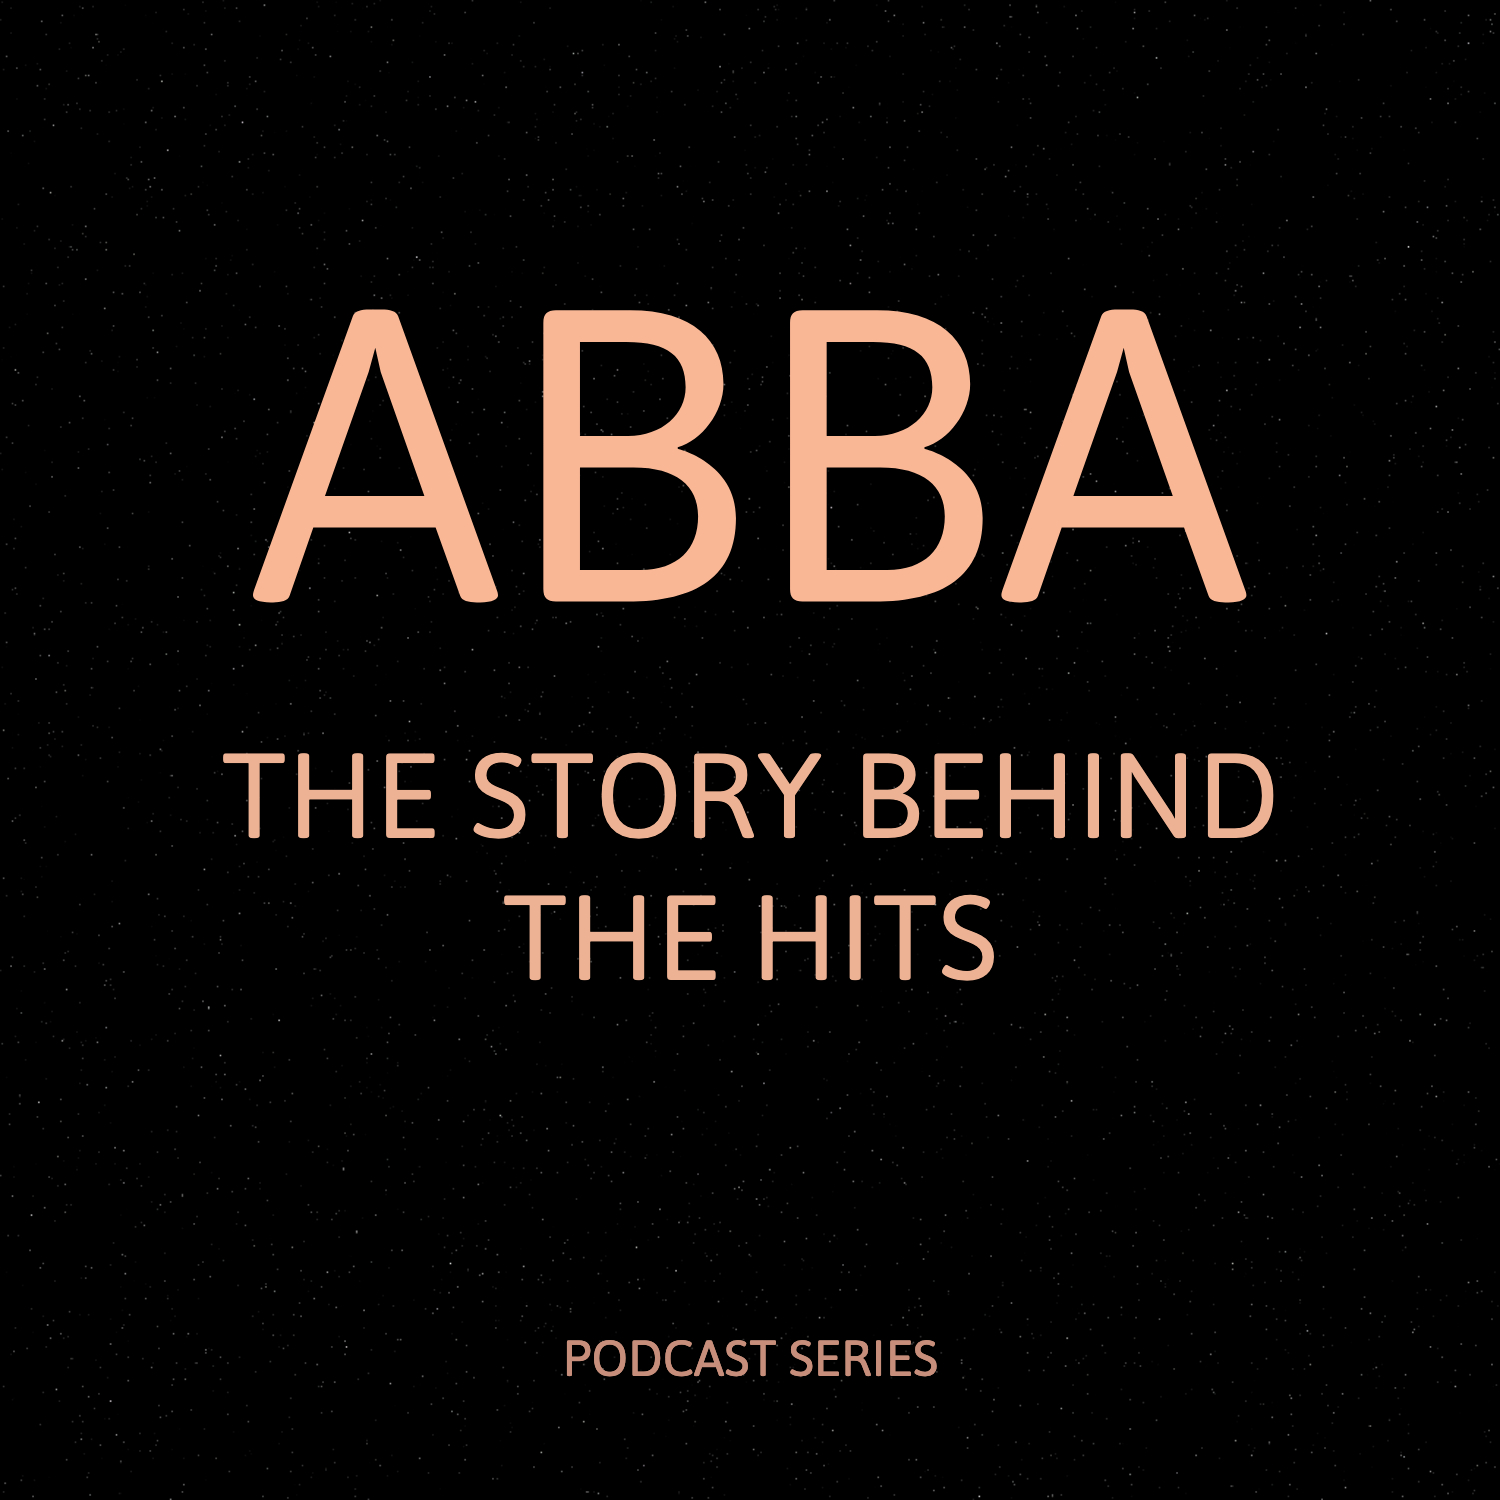 ABBA - THE STORY BEHIND THE HITS Podcast Series